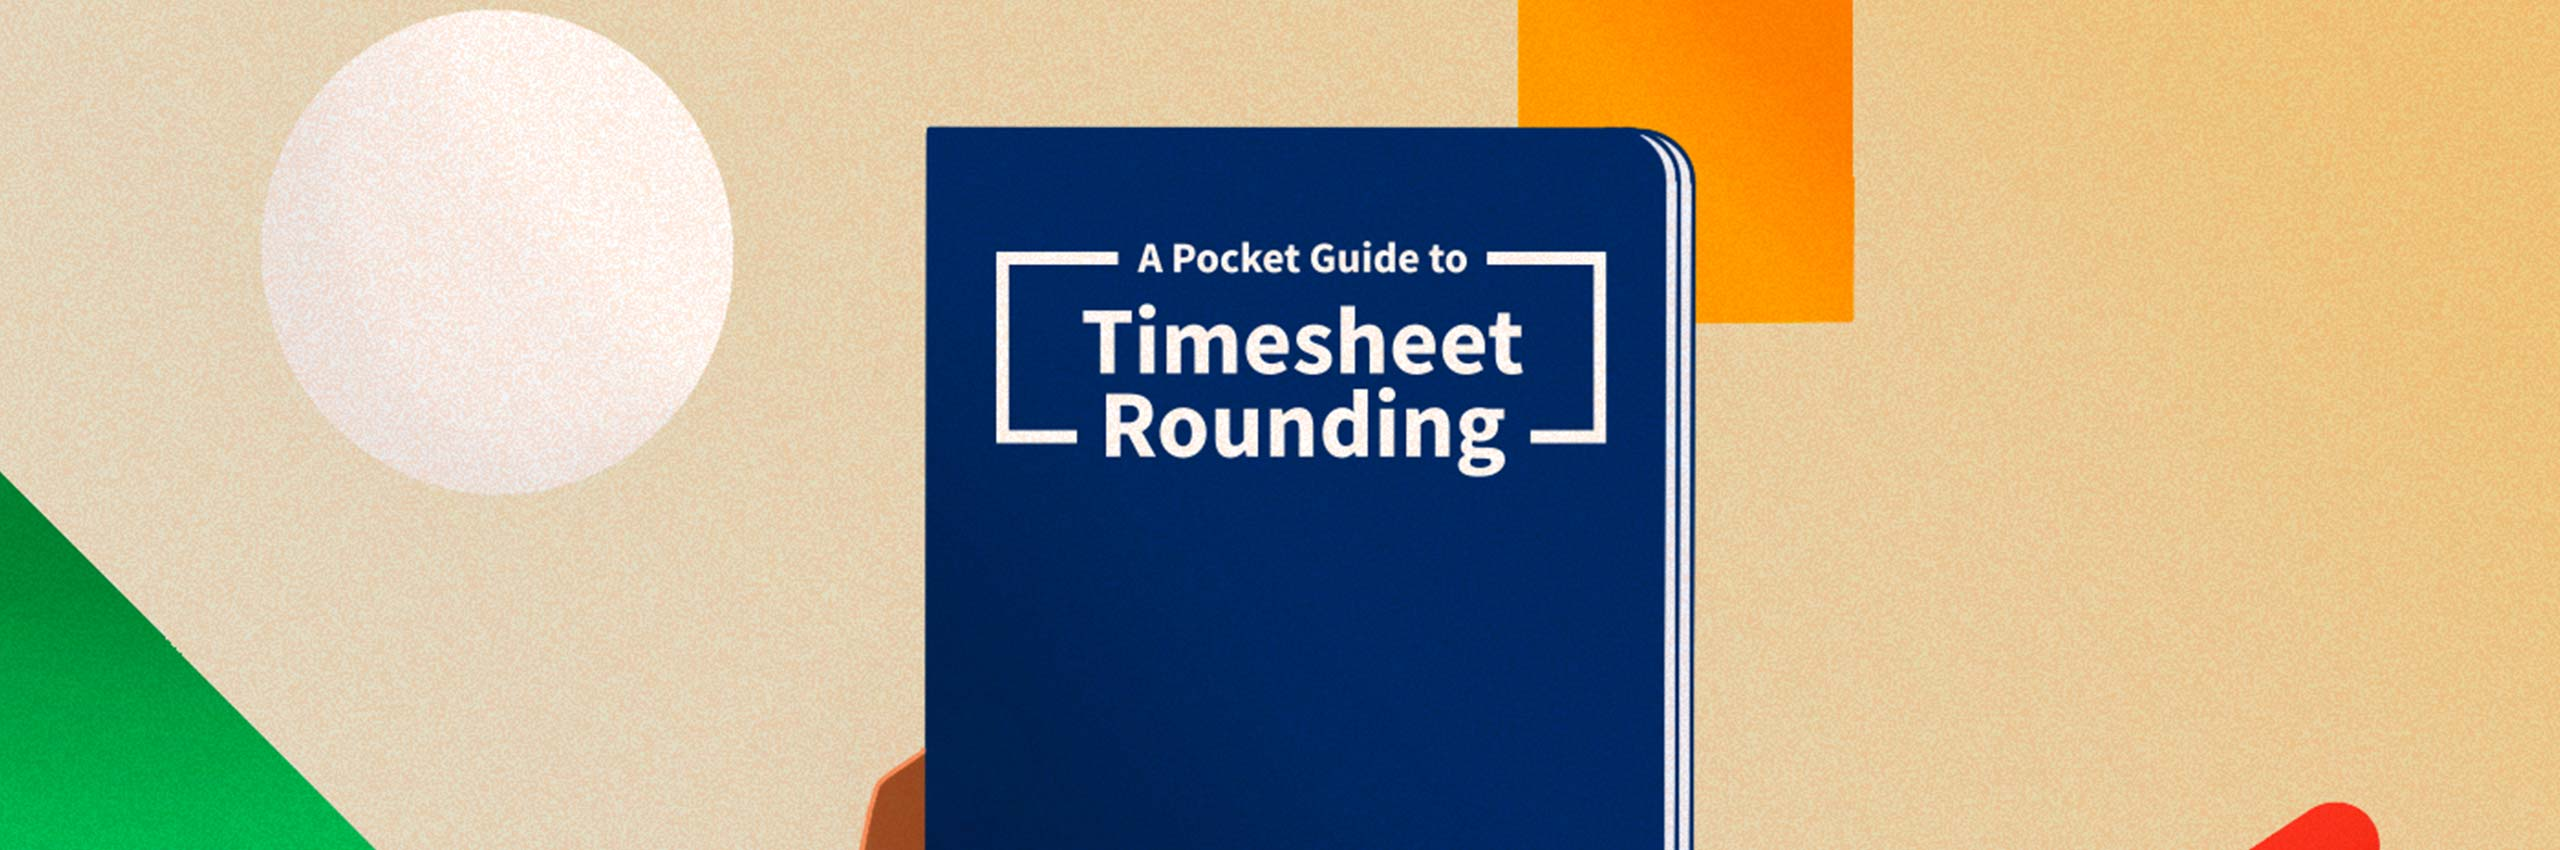 Illustration of a Pocket Guide to Timesheet Rounding